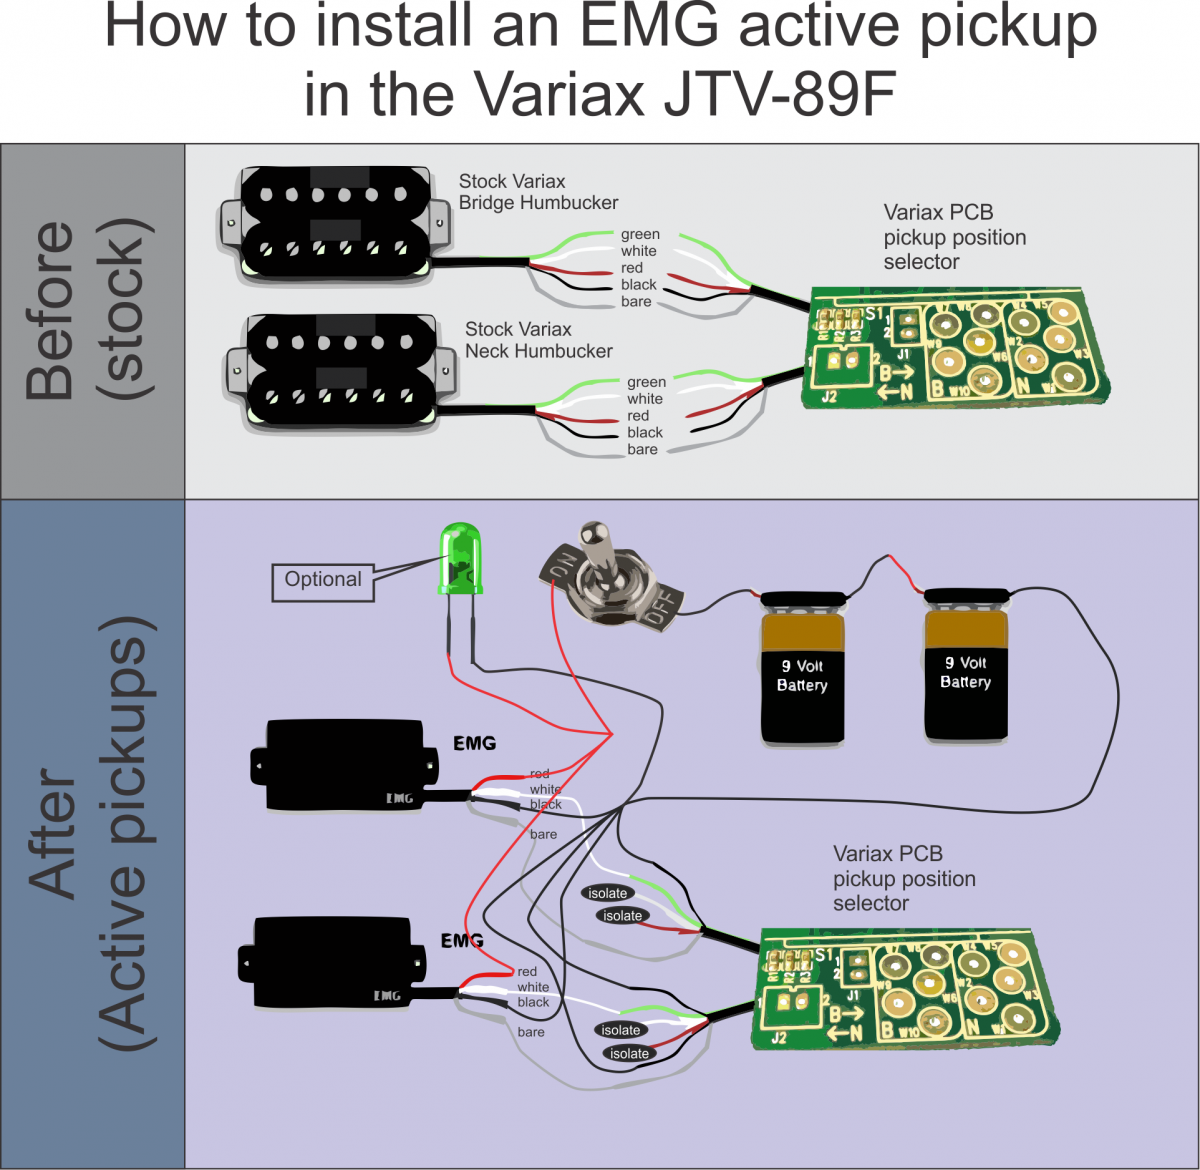 How I Installed Active Emg Pickups In A Variax Jtv 89f Single Coil Wiring Diagram Post 668177 0 69614100 1459788903 Thumb